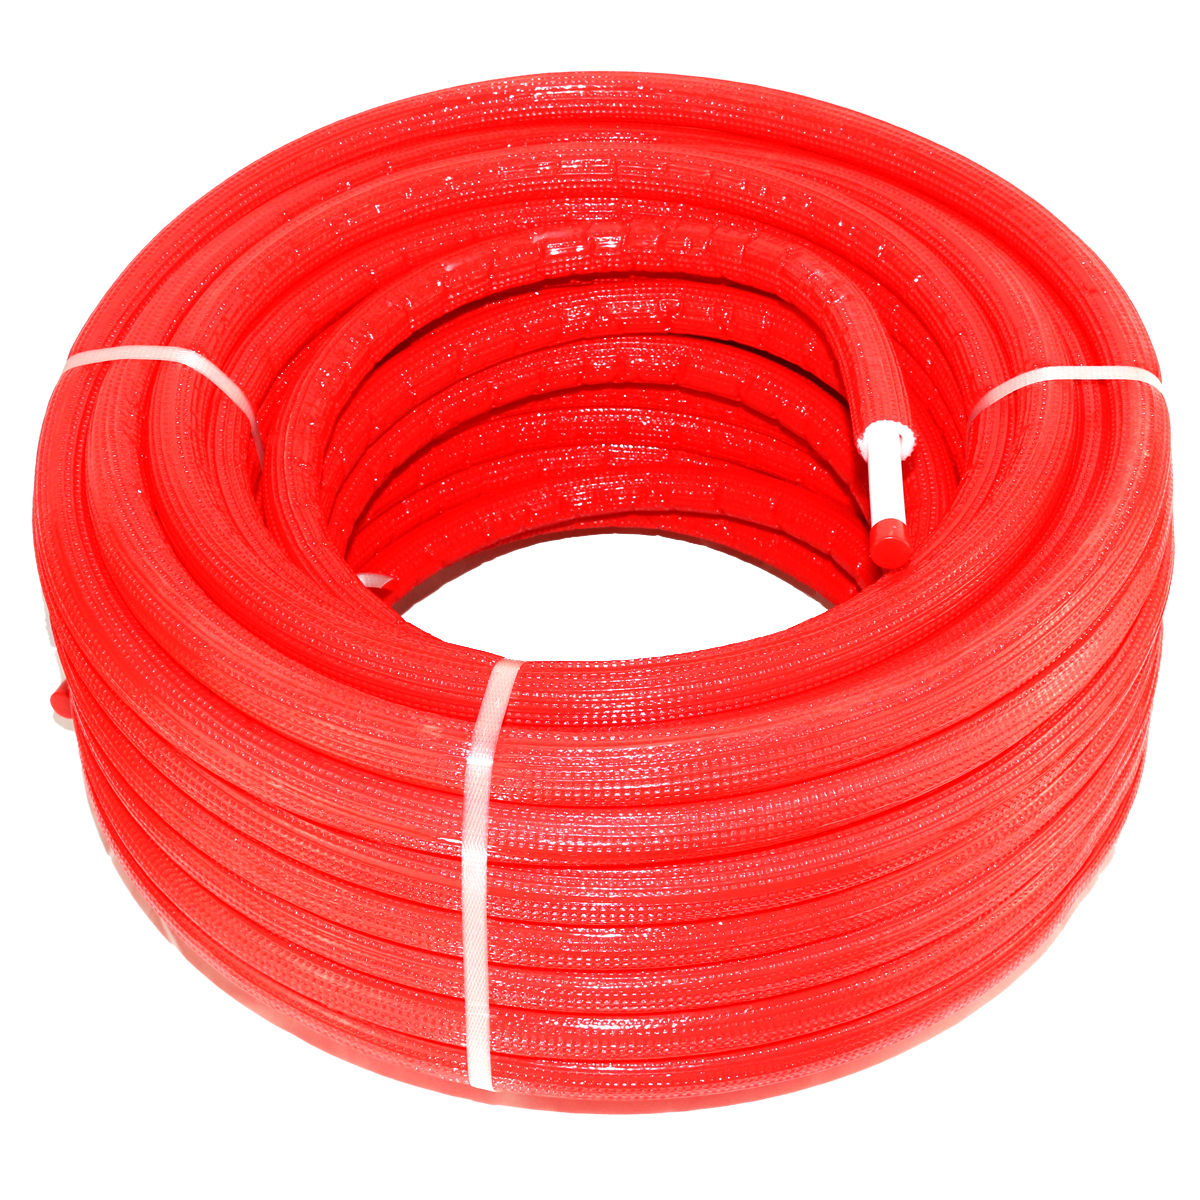 Insulation Pipe 16 x 2.0 × 50 m PEX-AL-PEX Red